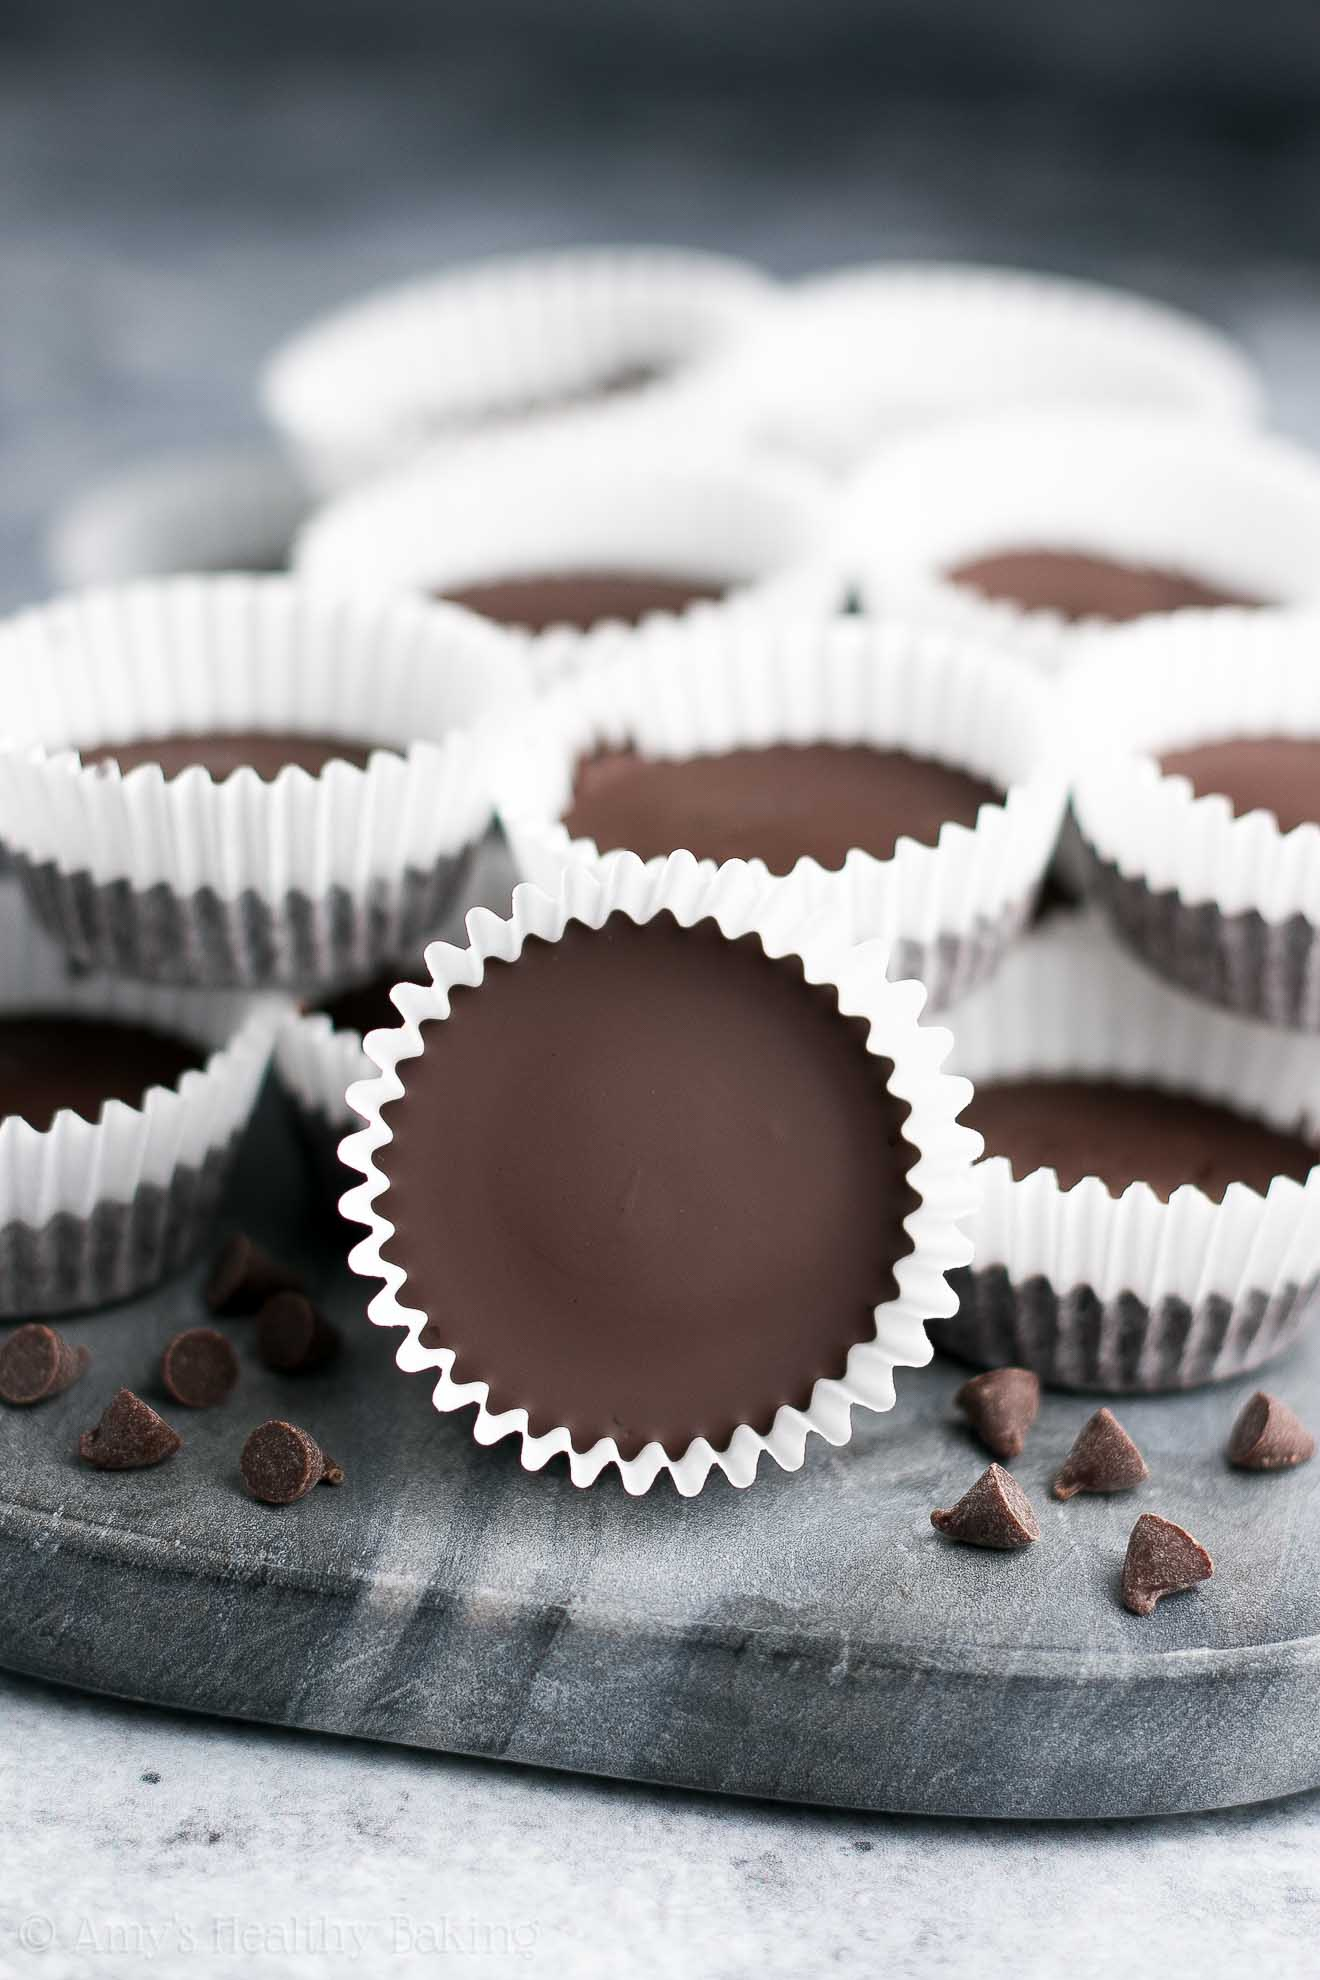 A tray of Healthy Dark Chocolate Espresso Peanut Butter Cups